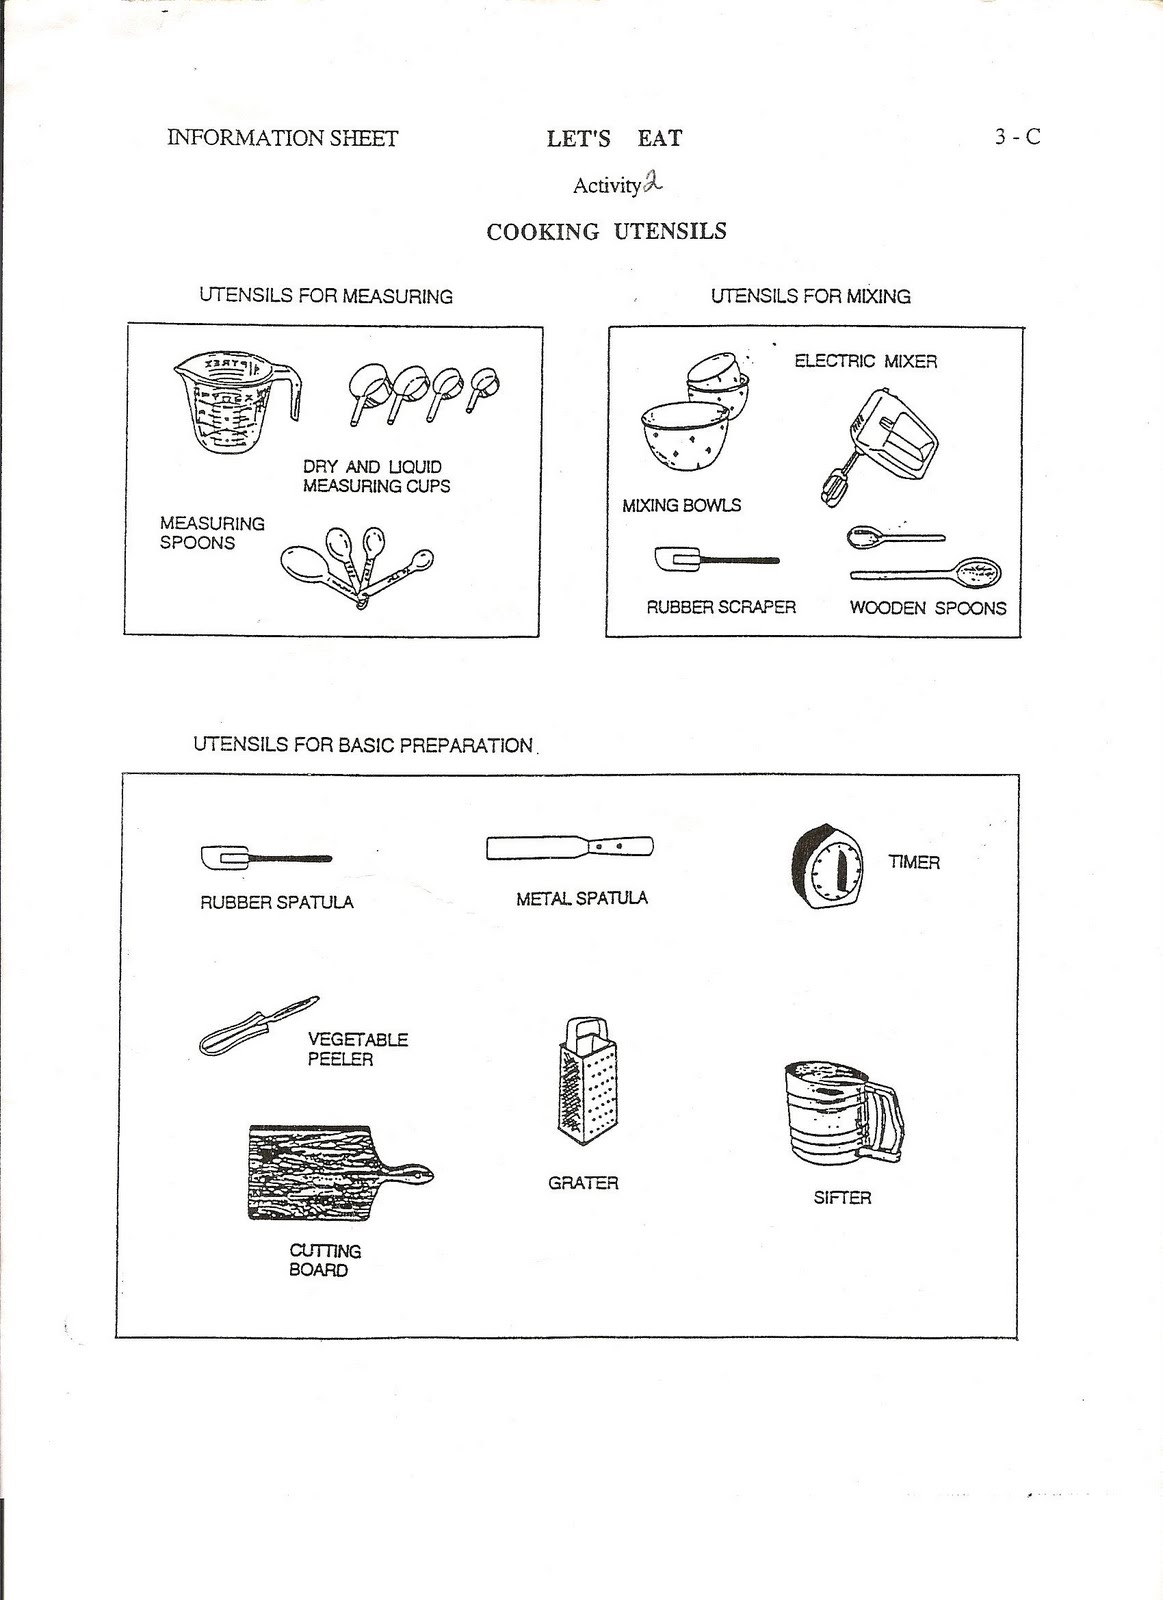 Chapter 9 Kitchen Utensils Worksheet Kitchen Utensils